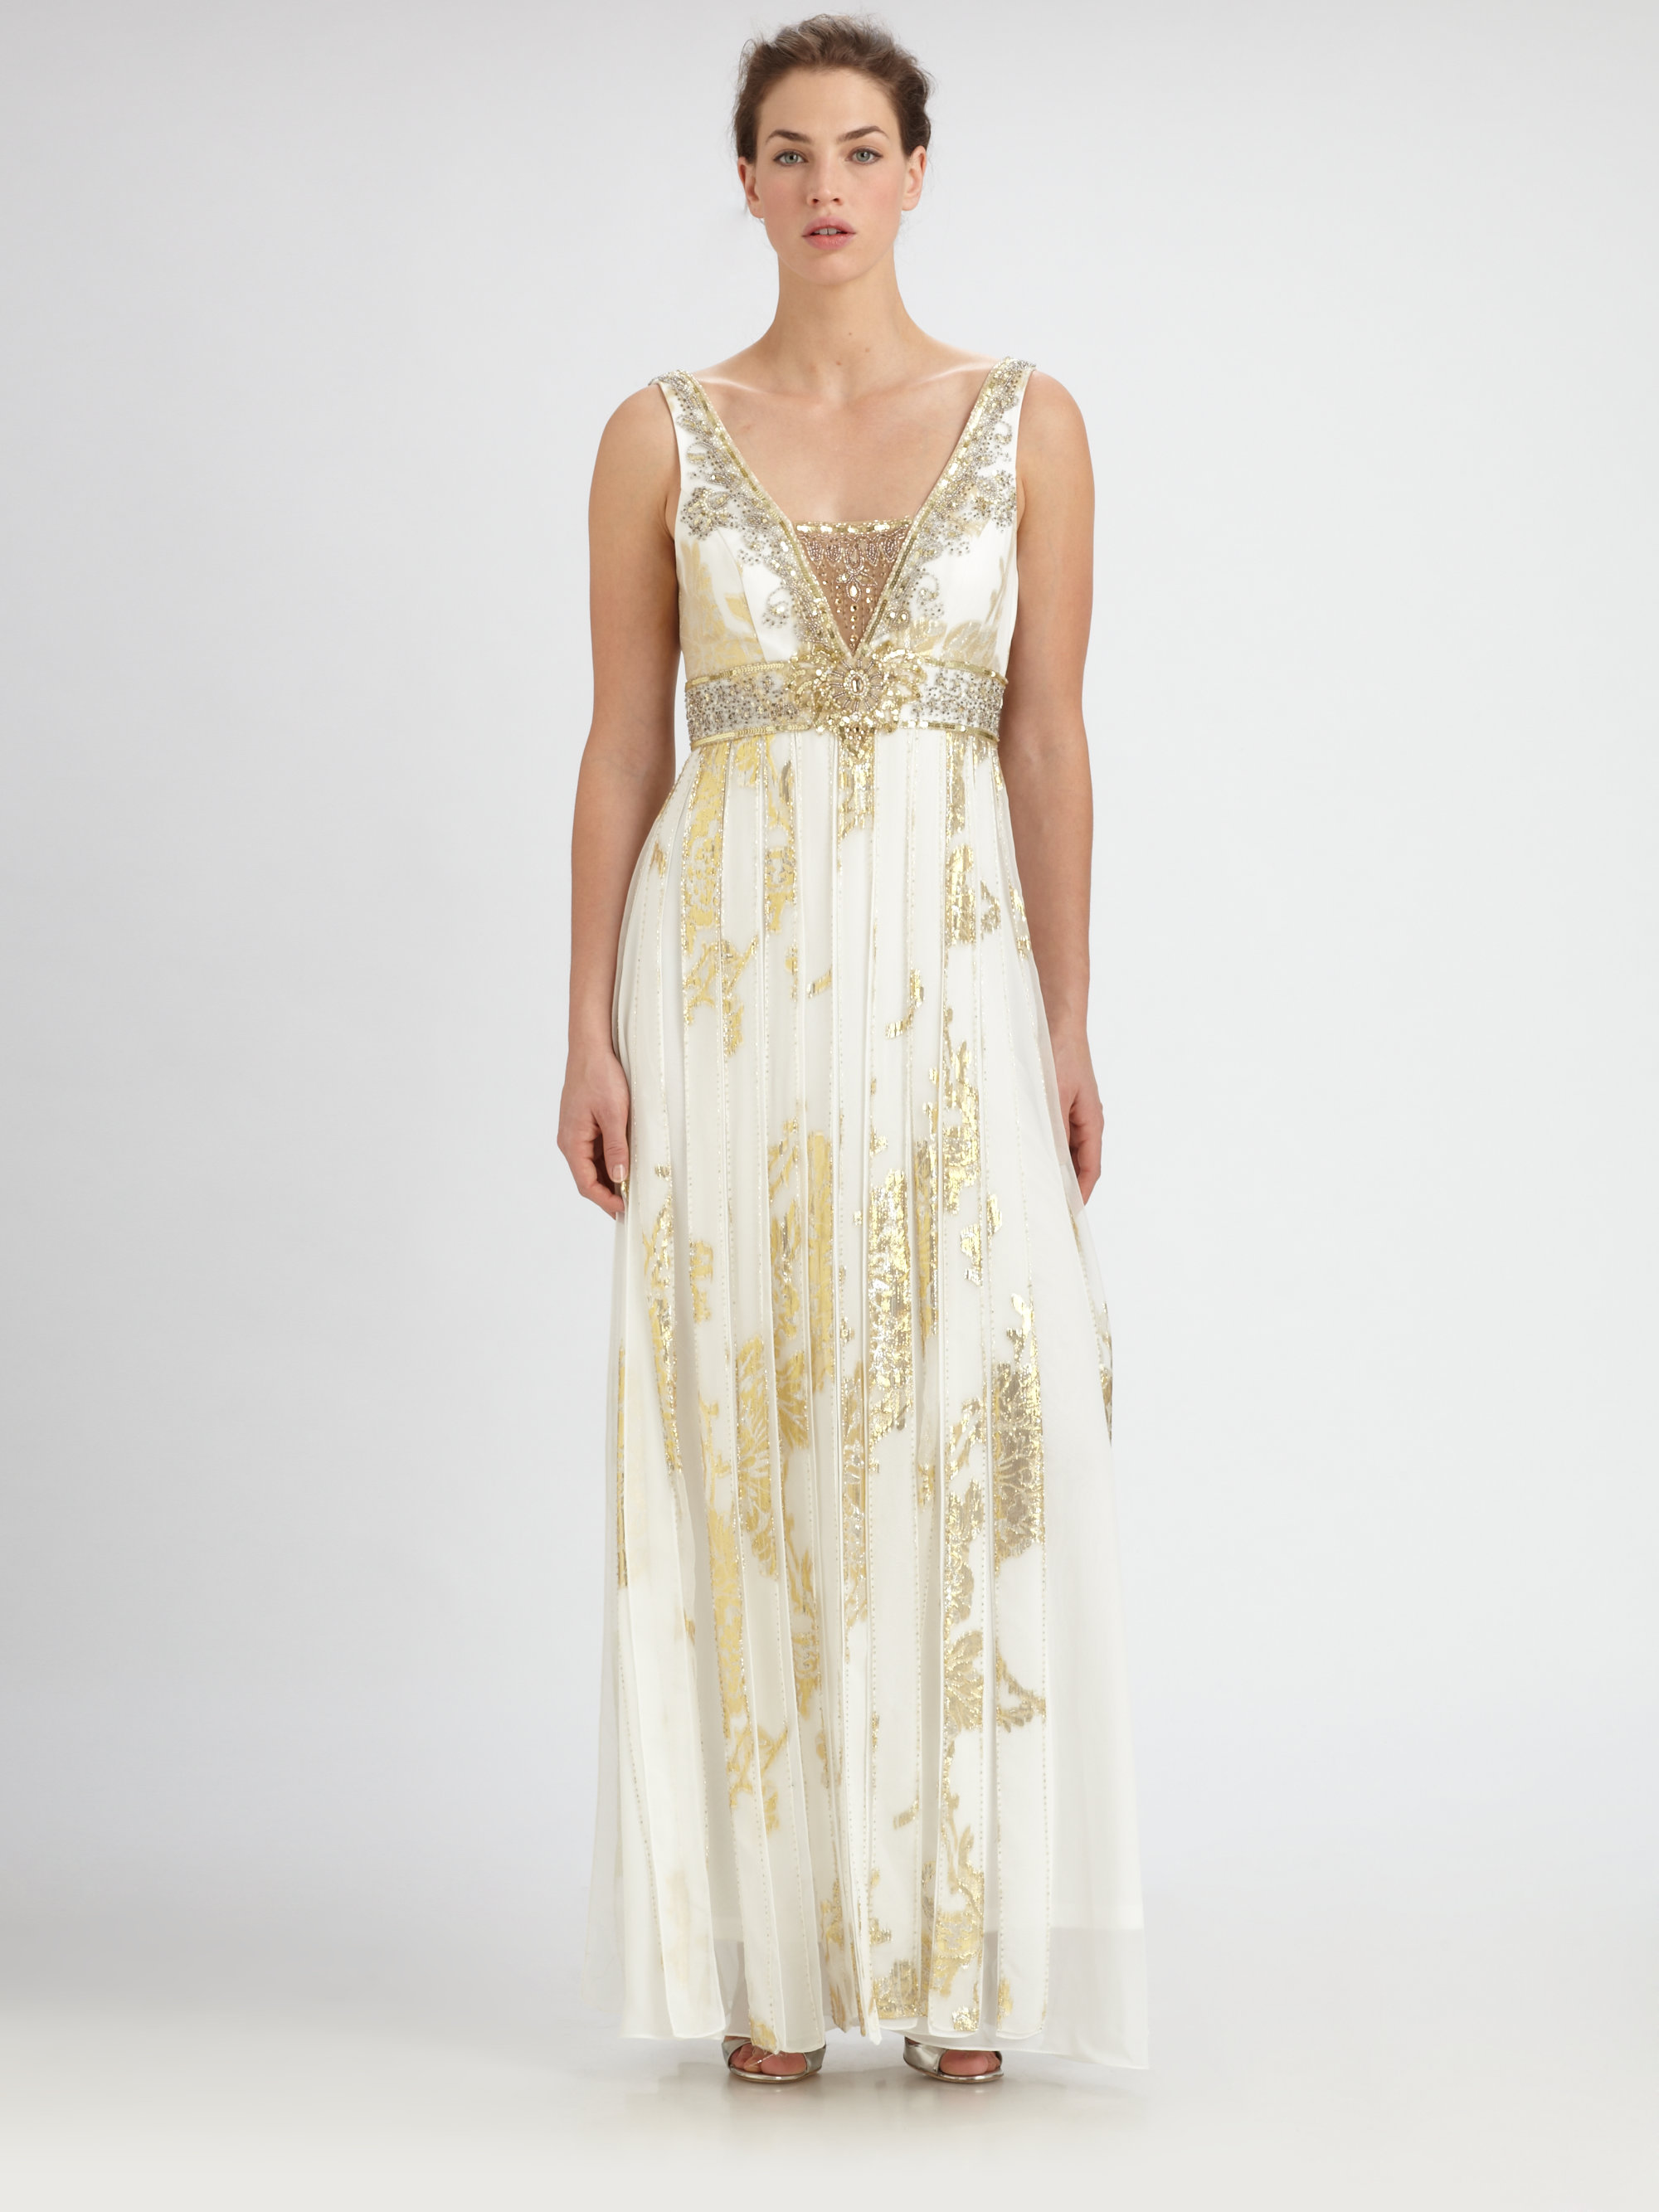 Lyst - Sue Wong Beaded Silk Jacquard Gown in Metallic